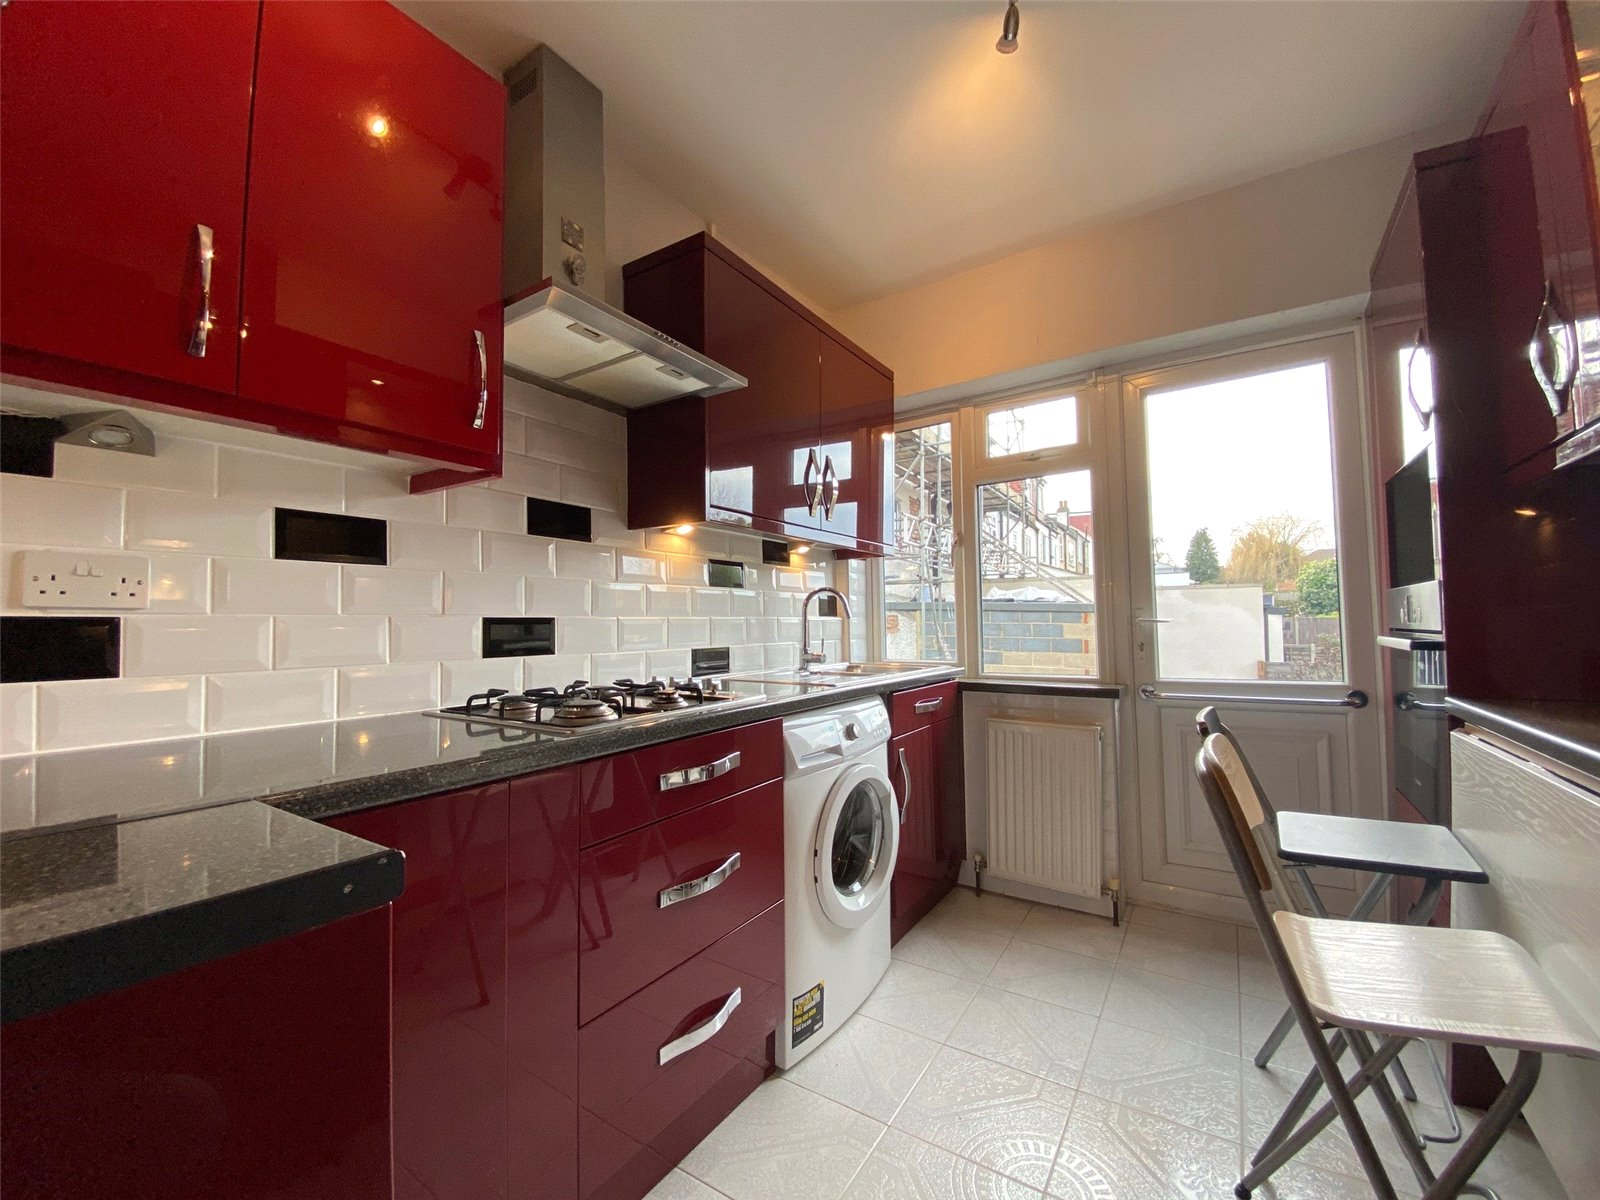 2 bed maisonette to rent in Southgate, N14 4DB 0